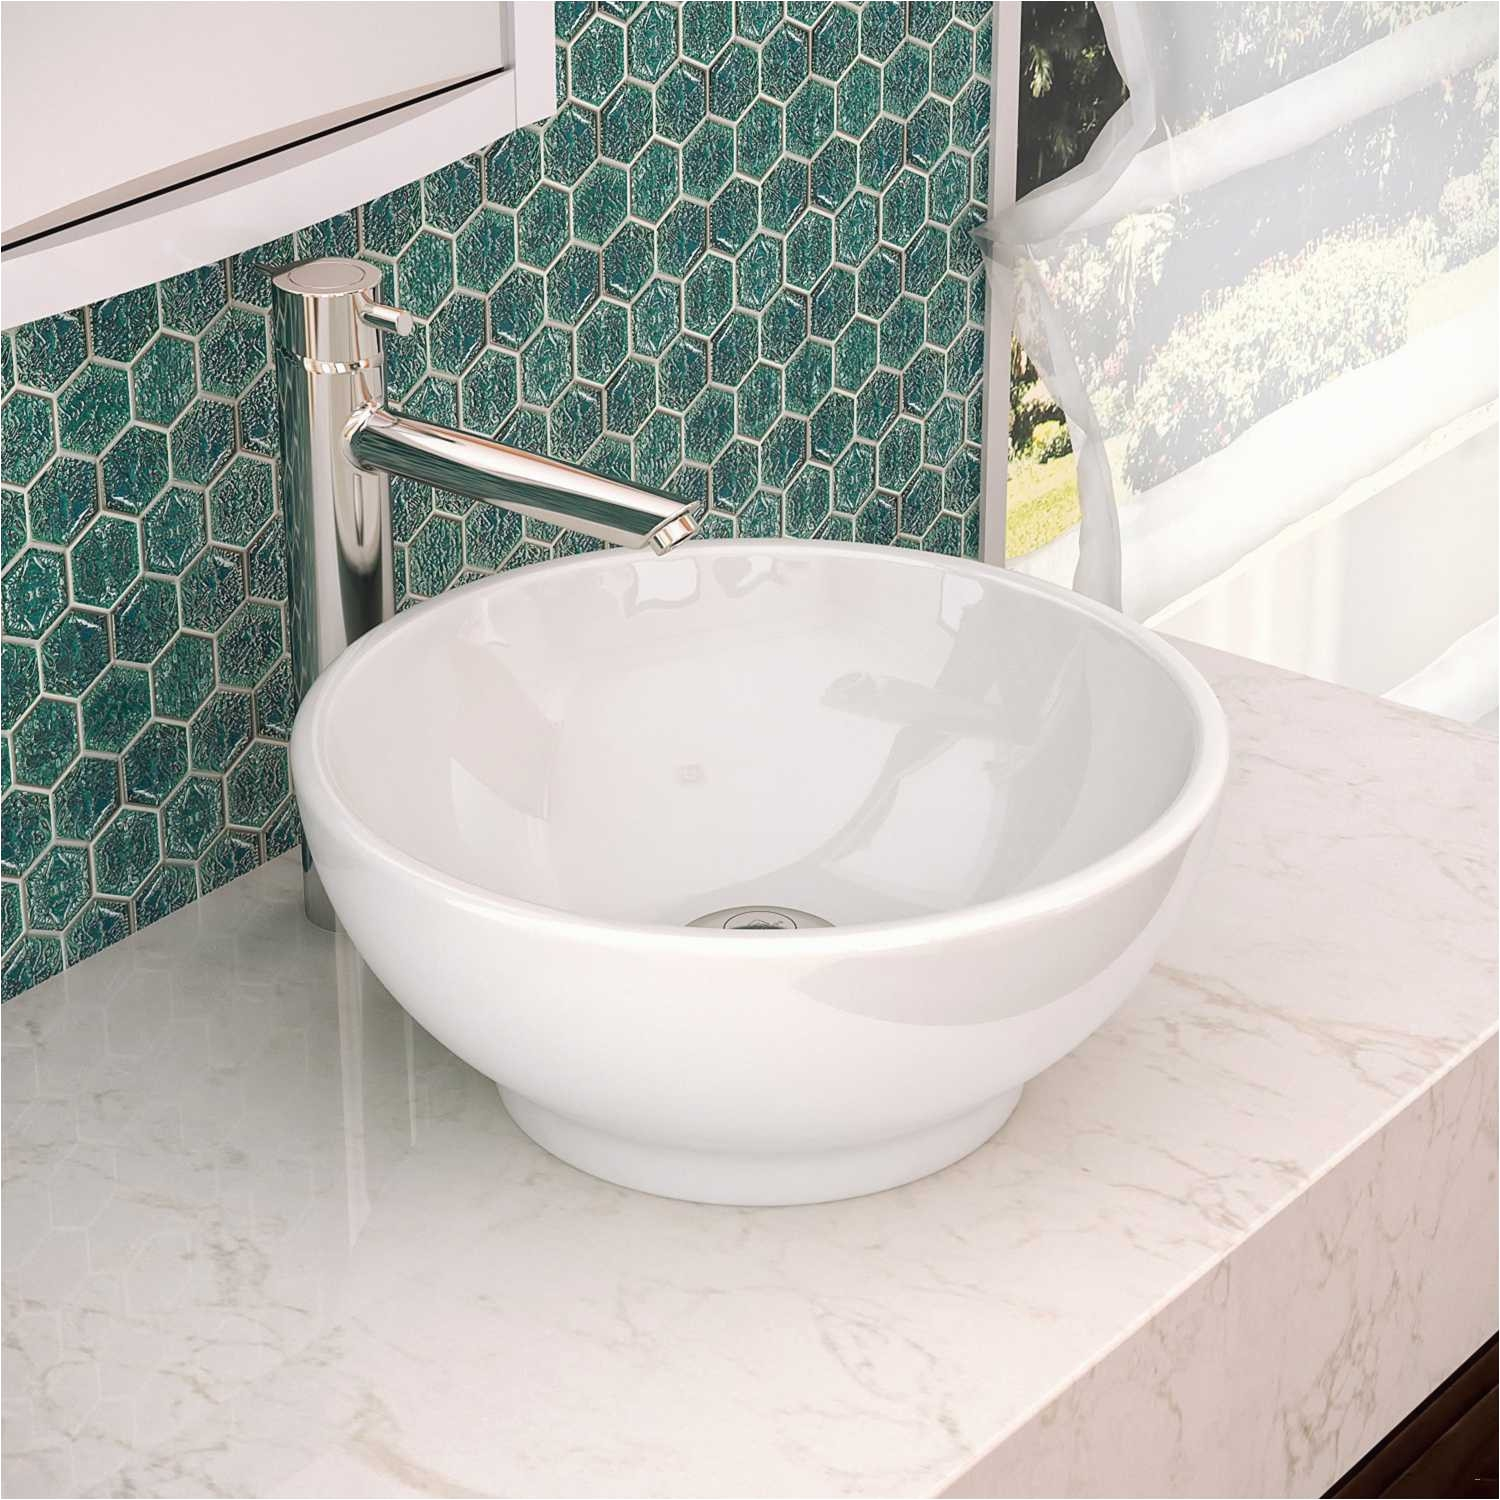 counter bathroom sink ideas gallery counter bathroom sink bowlsh over bowlsi 0d cool